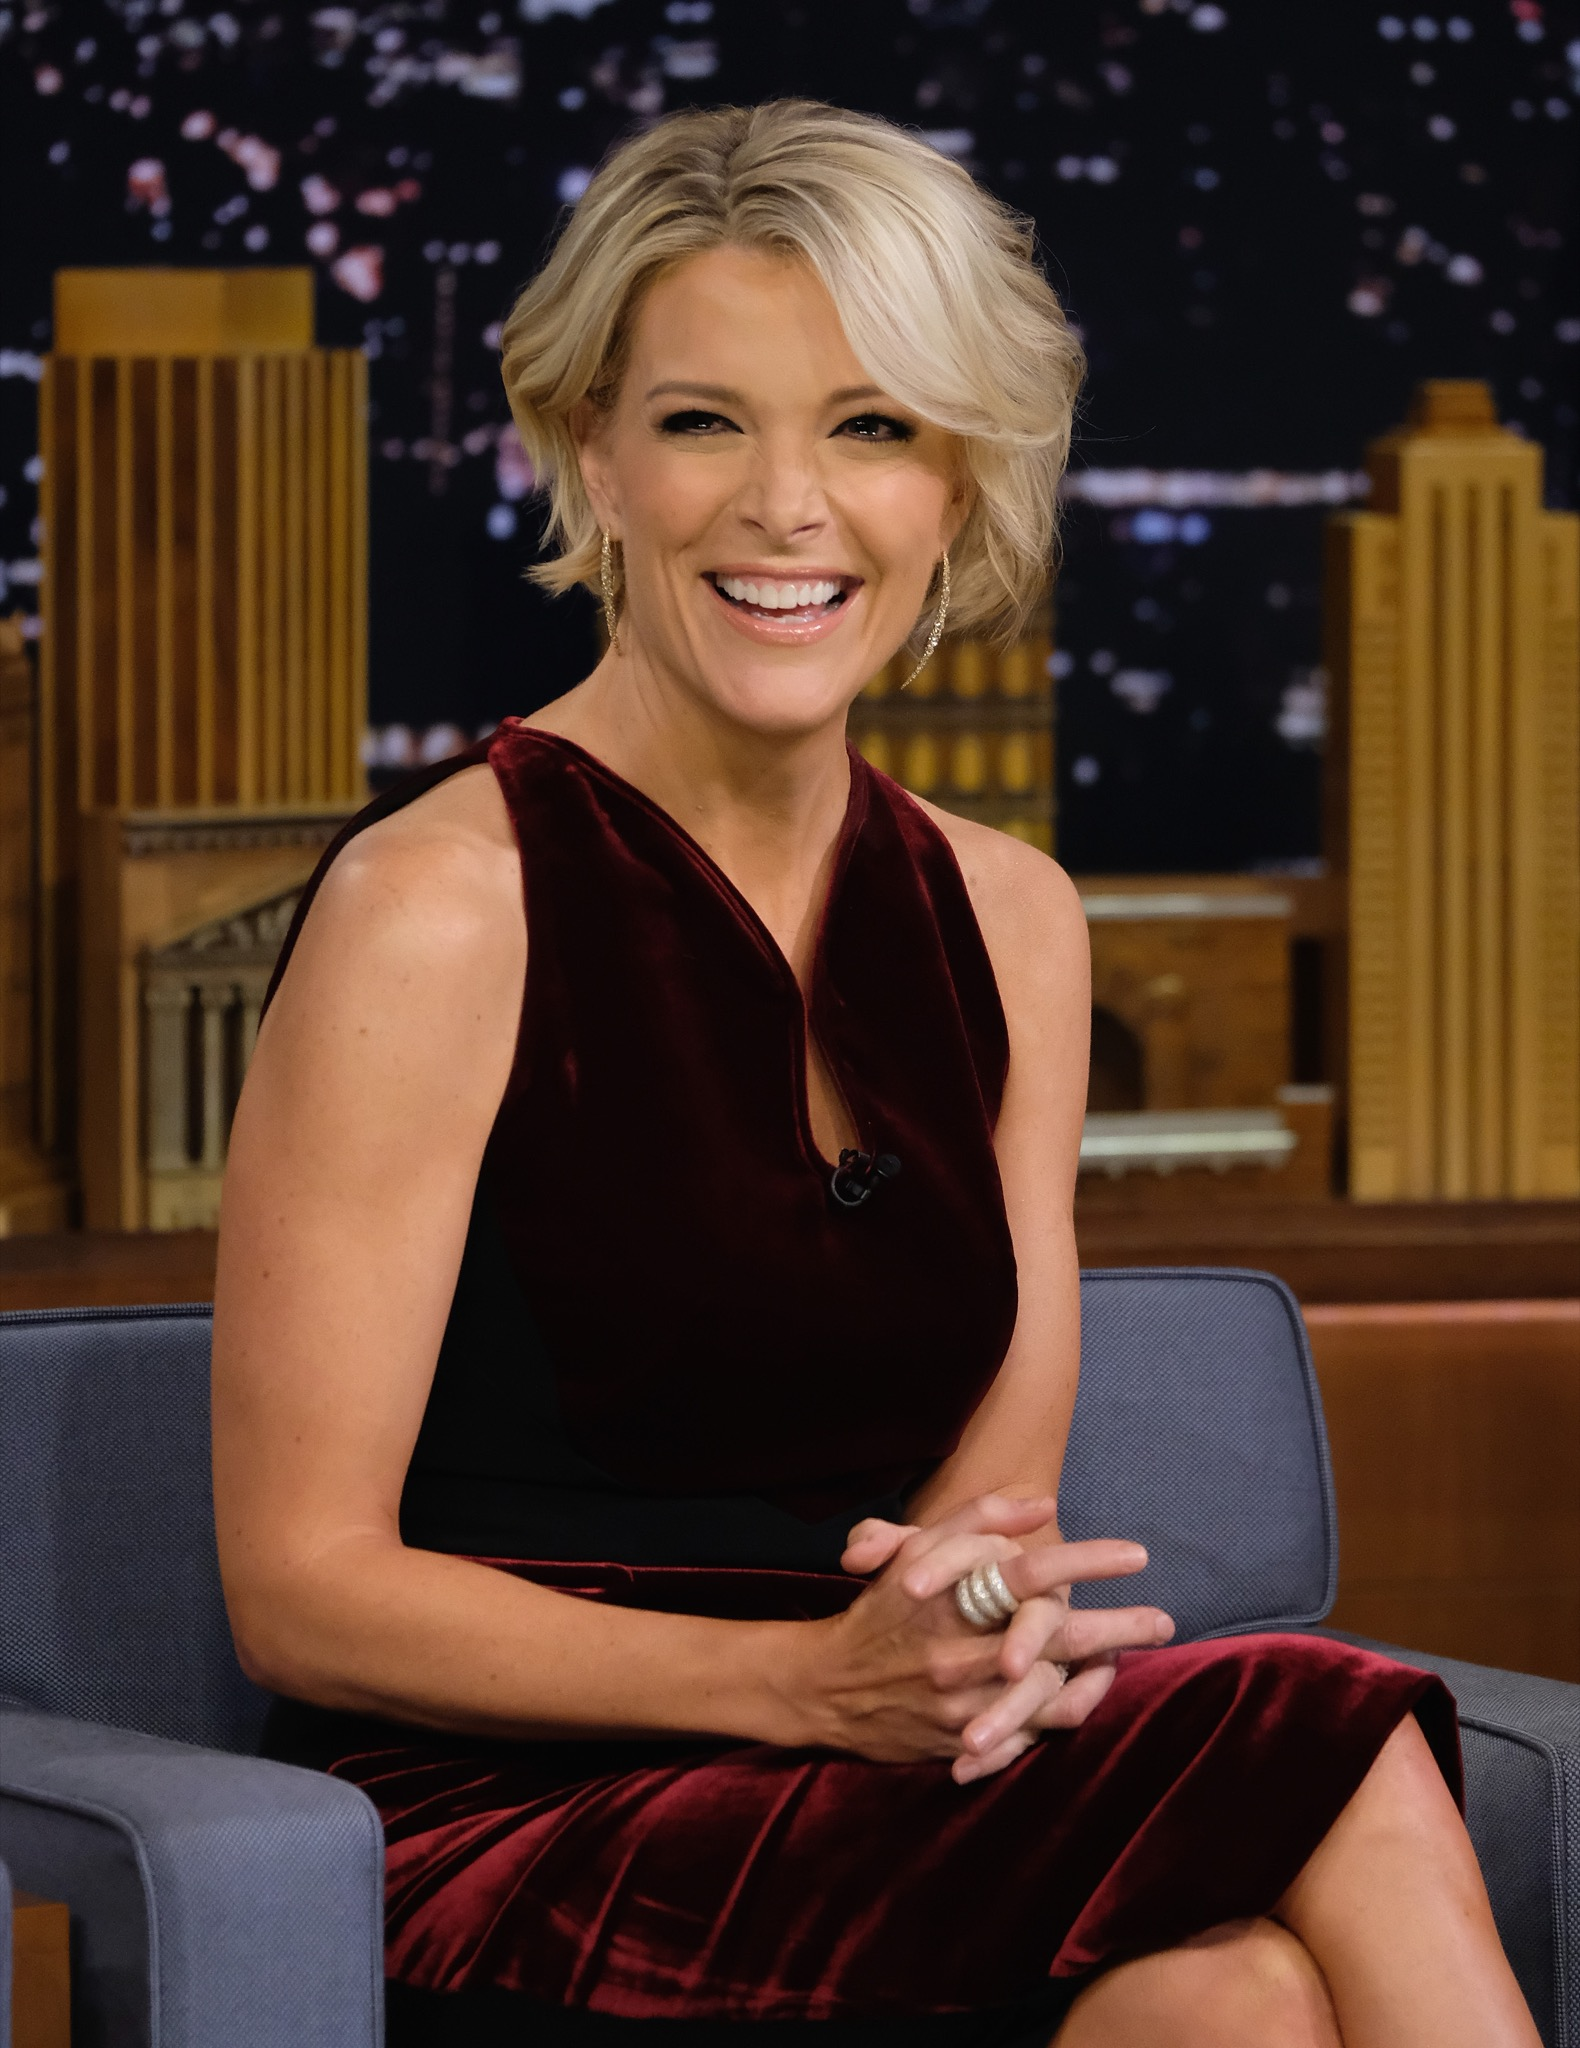 Megyn Kelly on The Tonight Show with Jimmy Fallon